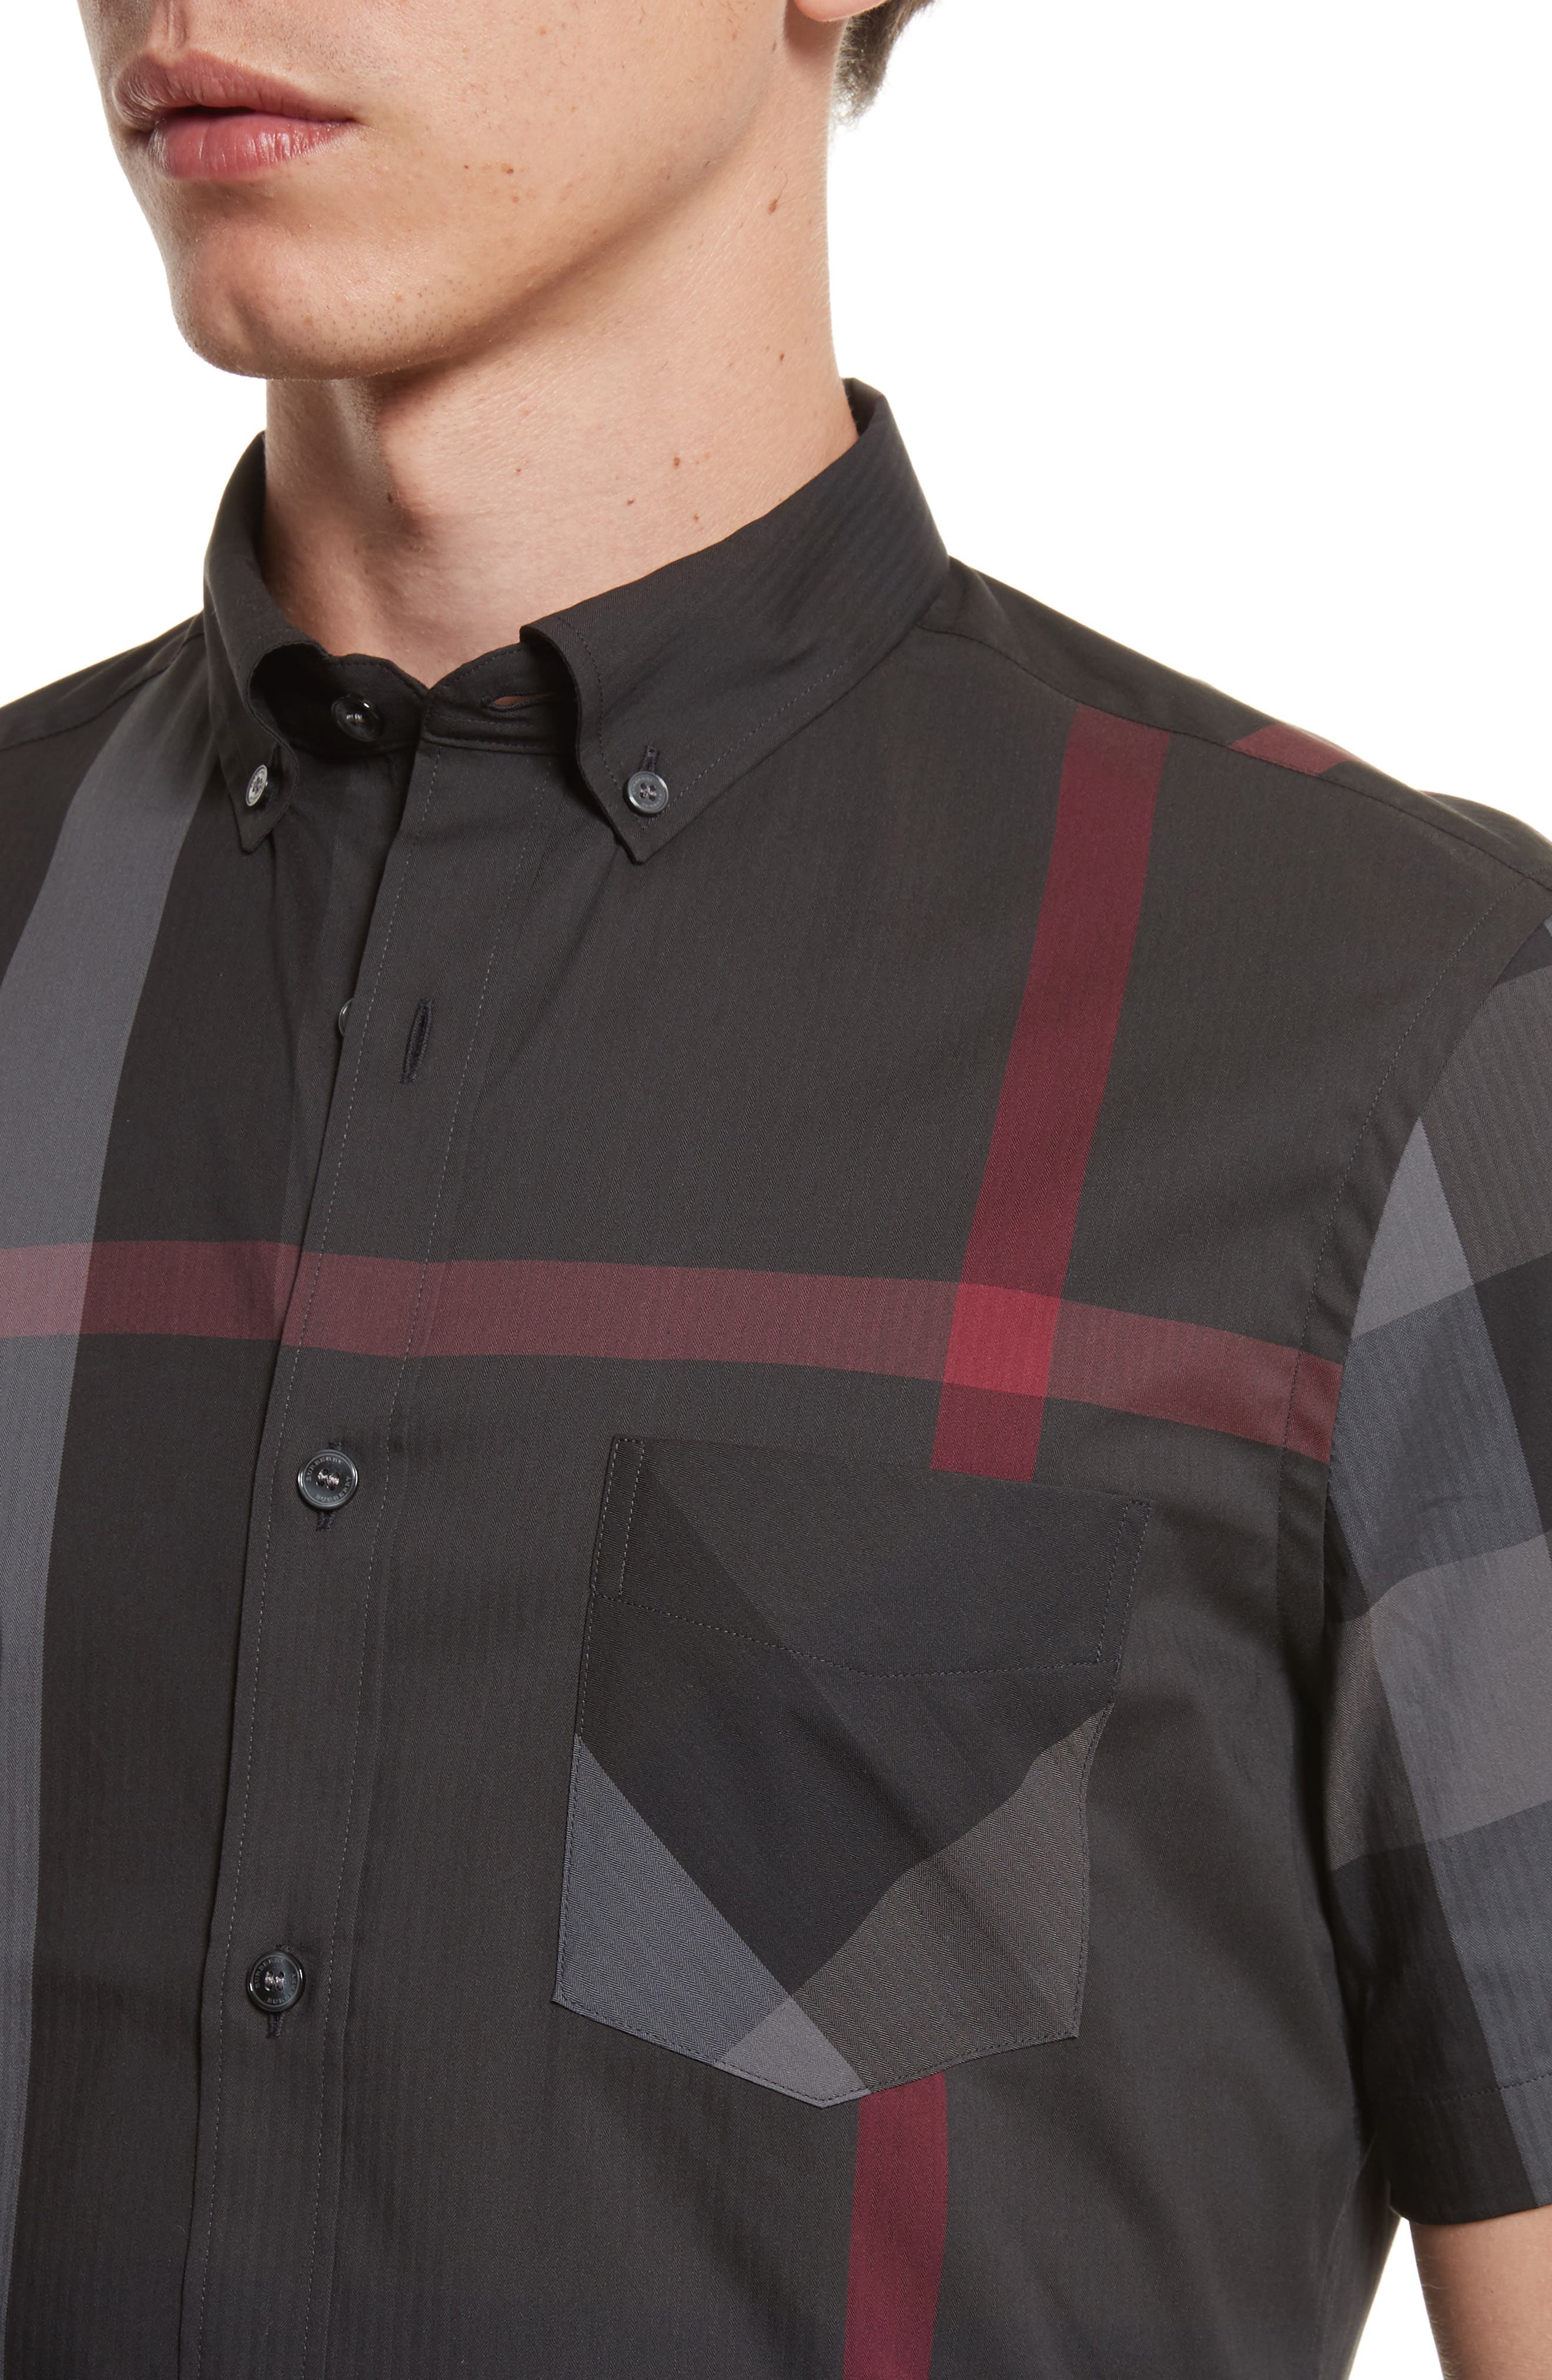 BURBERRY,                             Thornaby Trim Fit Check Sport Shirt,                             Alternate thumbnail 4, color,                             026